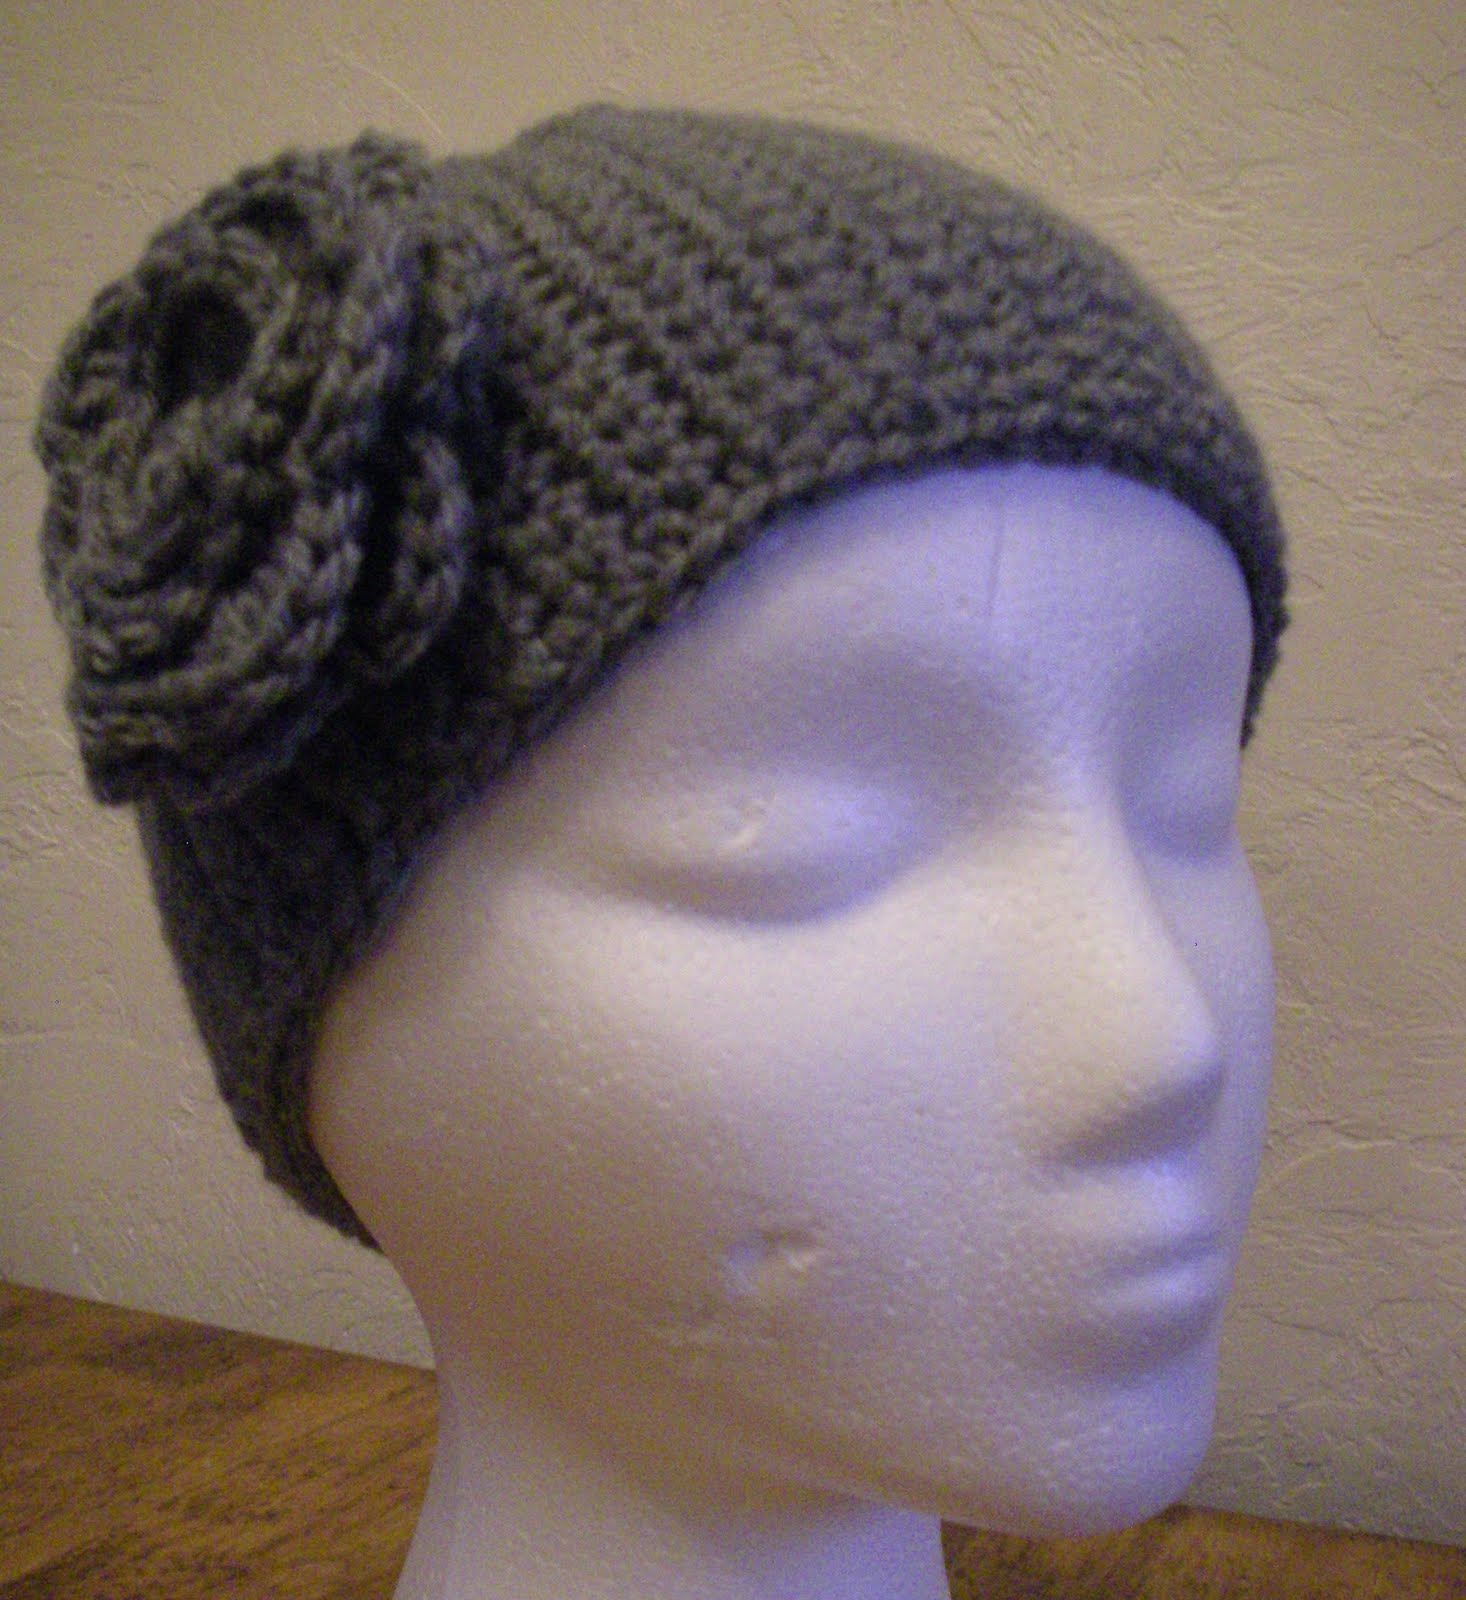 Free Crochet Pattern Headband Ear Warmer : Celestials Creations: Crocheted Headband